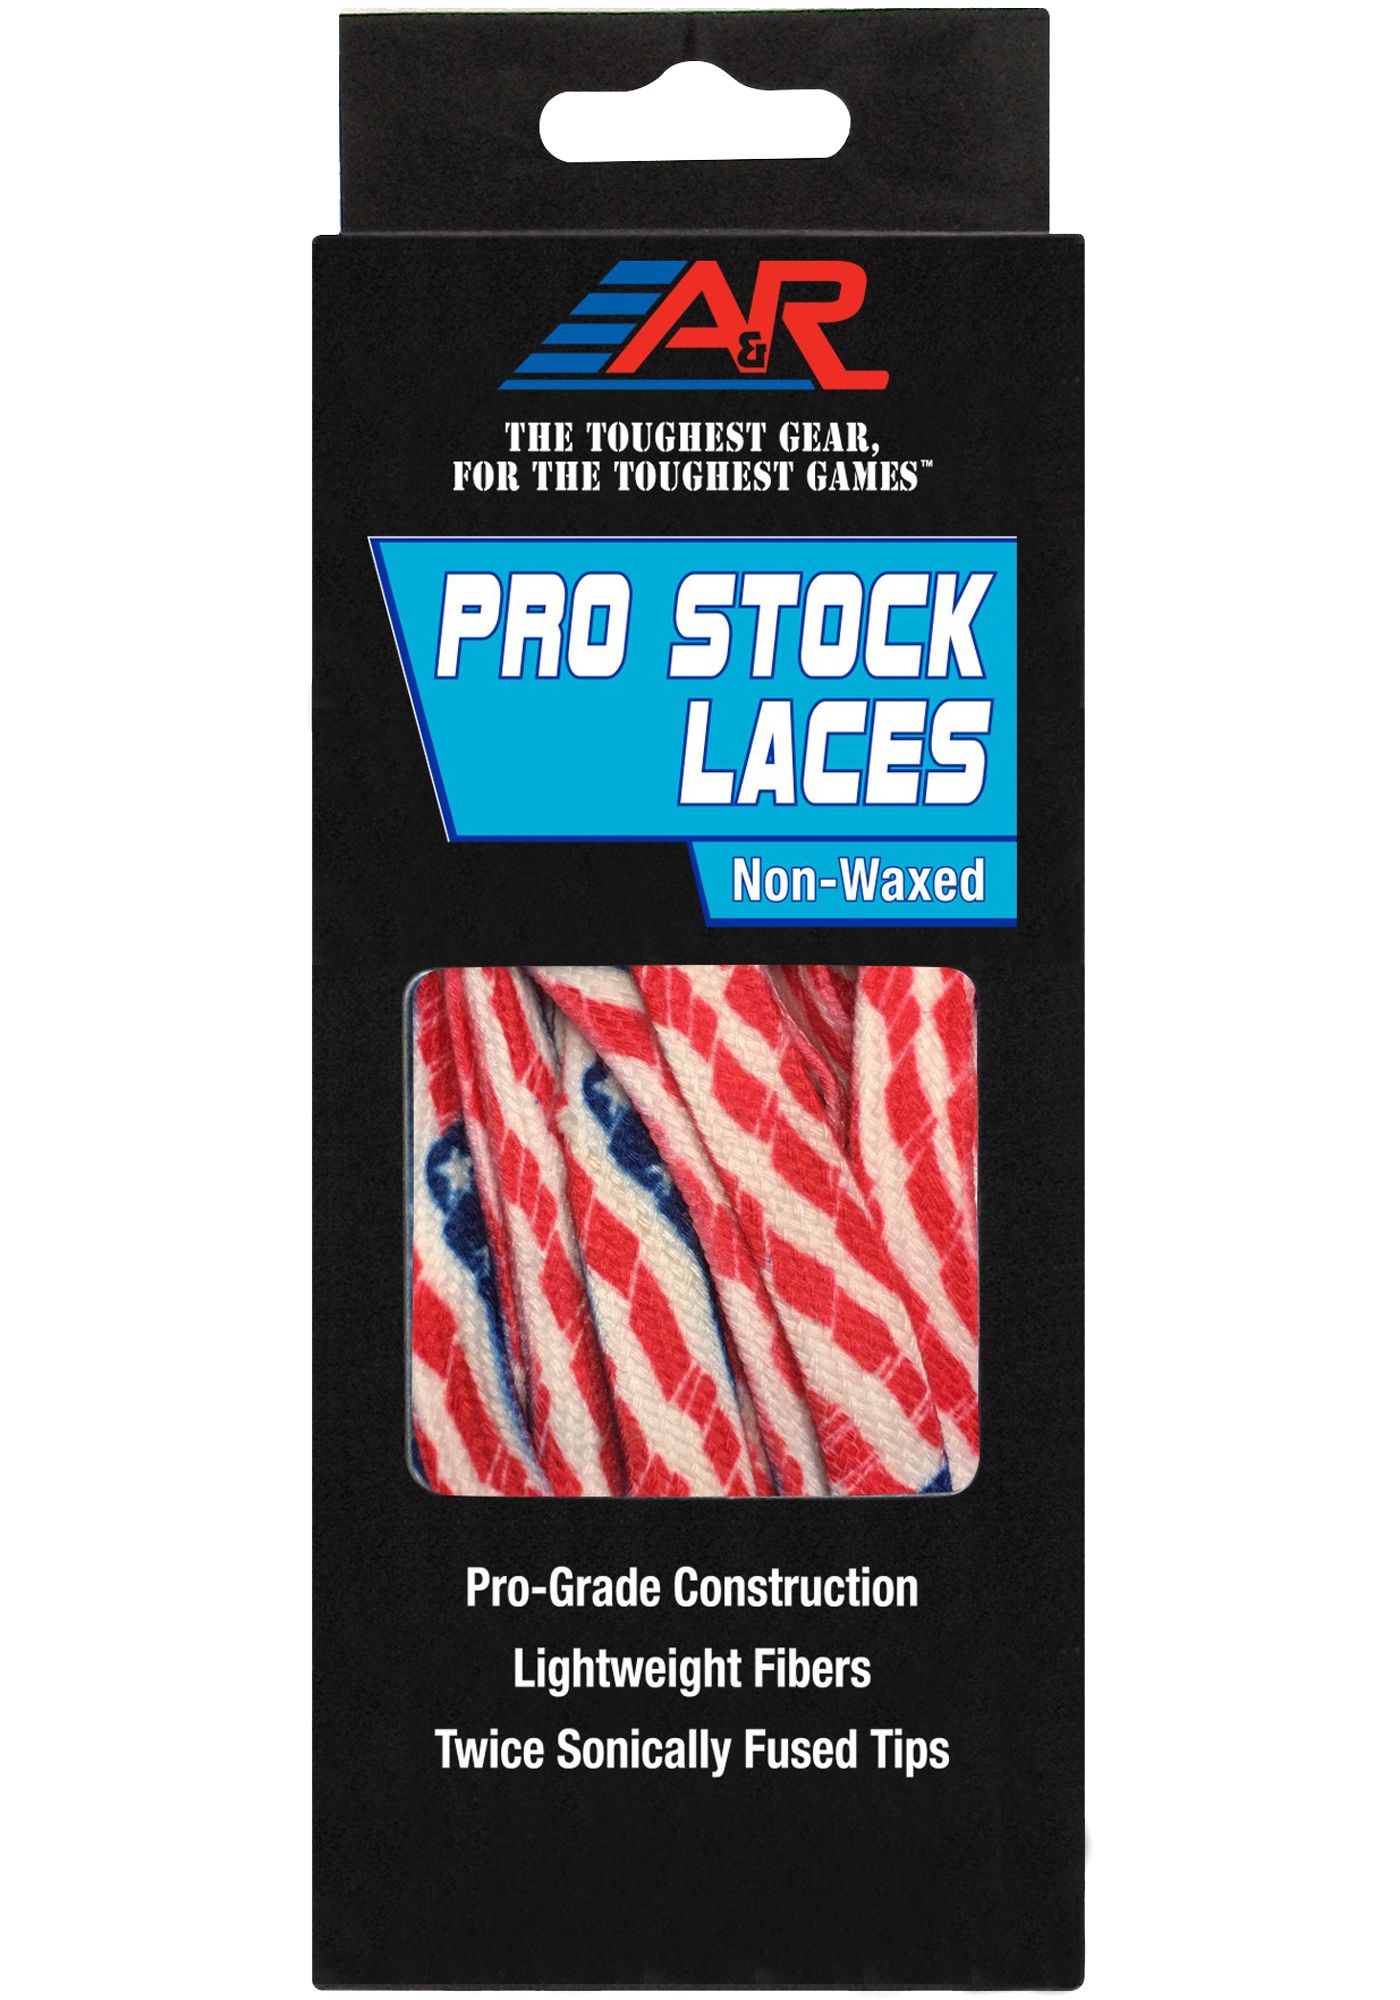 A&R Pro-Stock Non-Waxed Flag Hockey Skate Laces